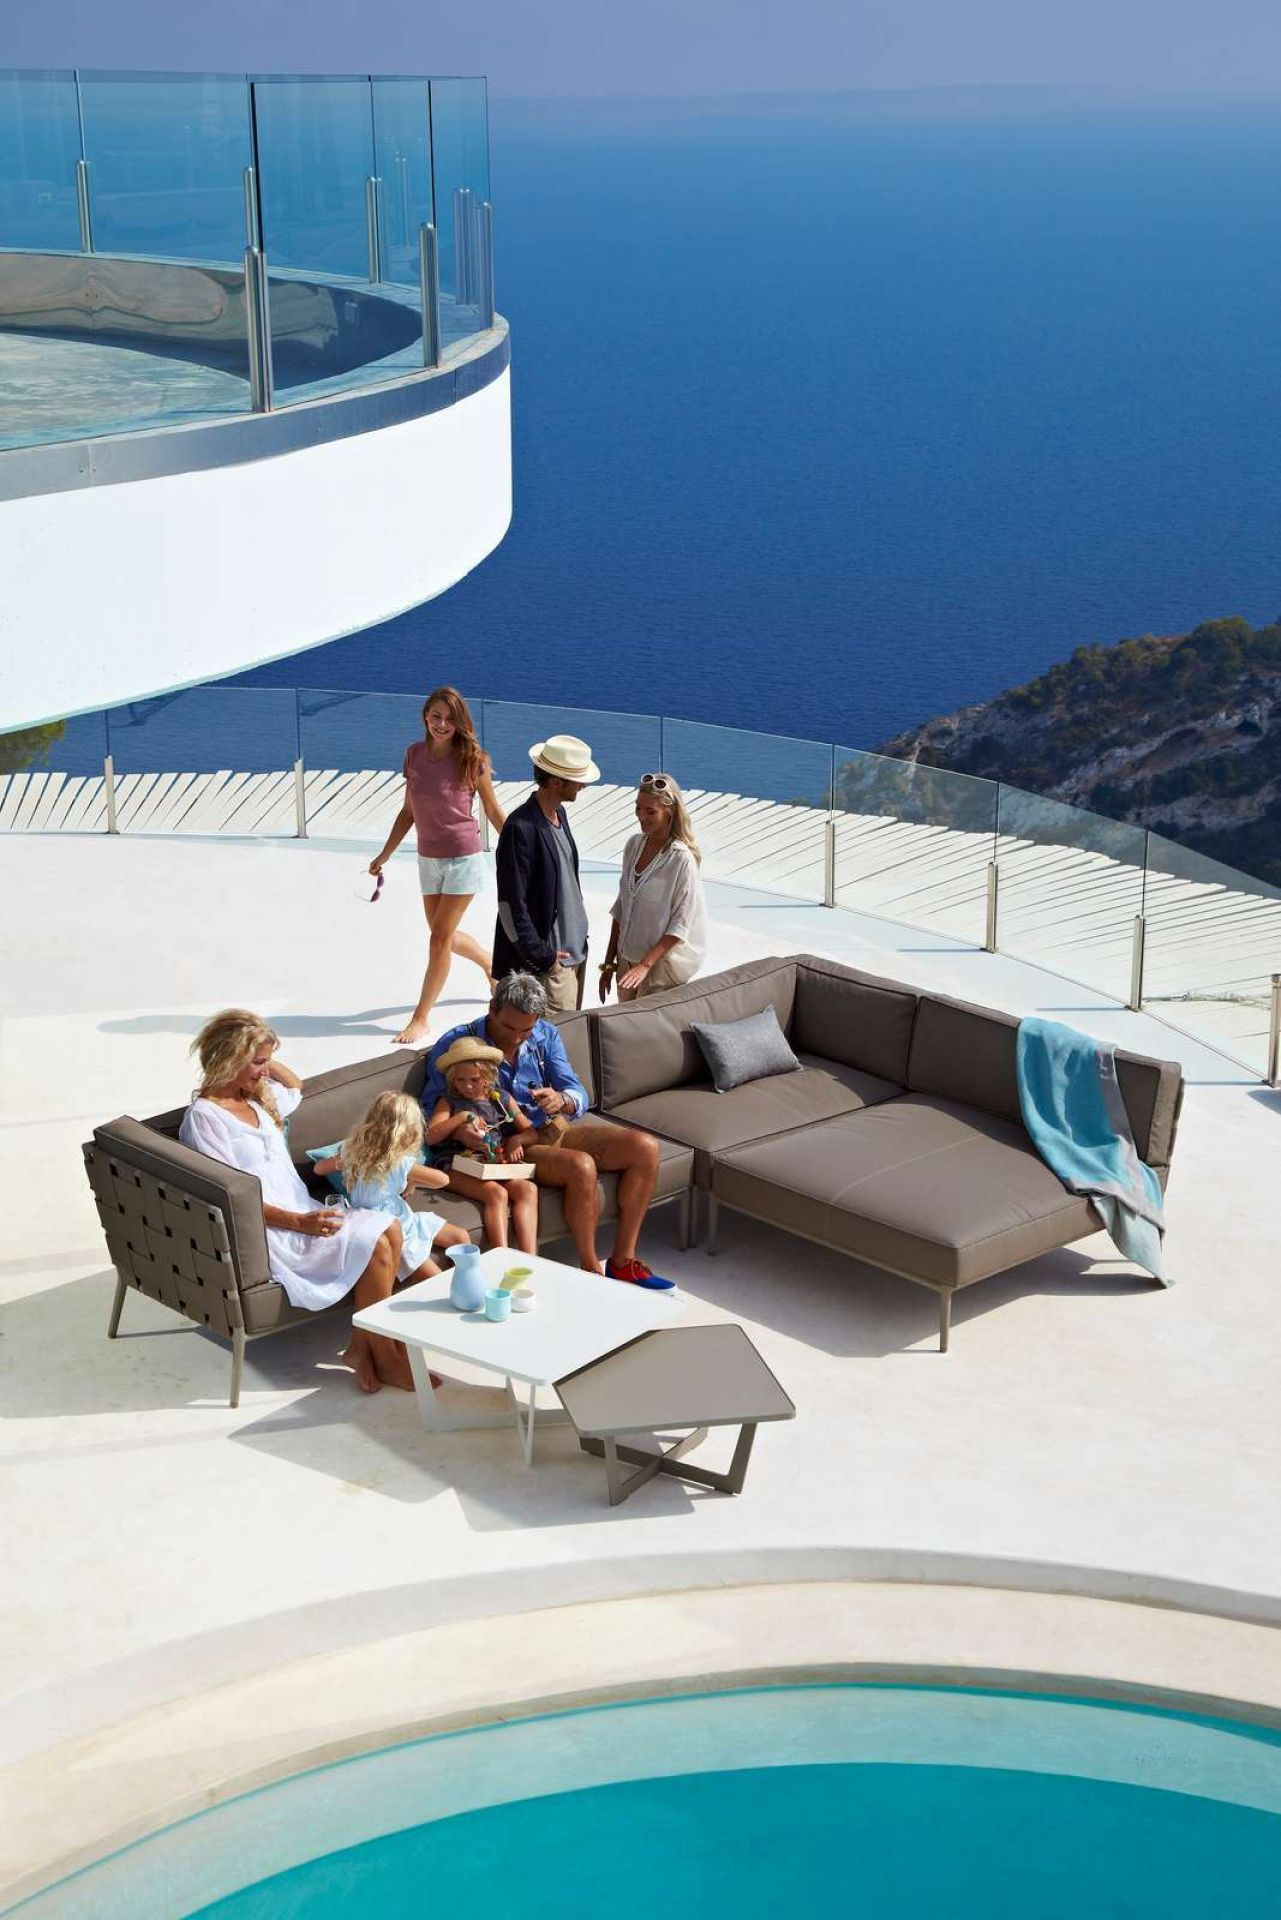 Conic Outdoor Daybed Schlafsofa Modul Cane-Line